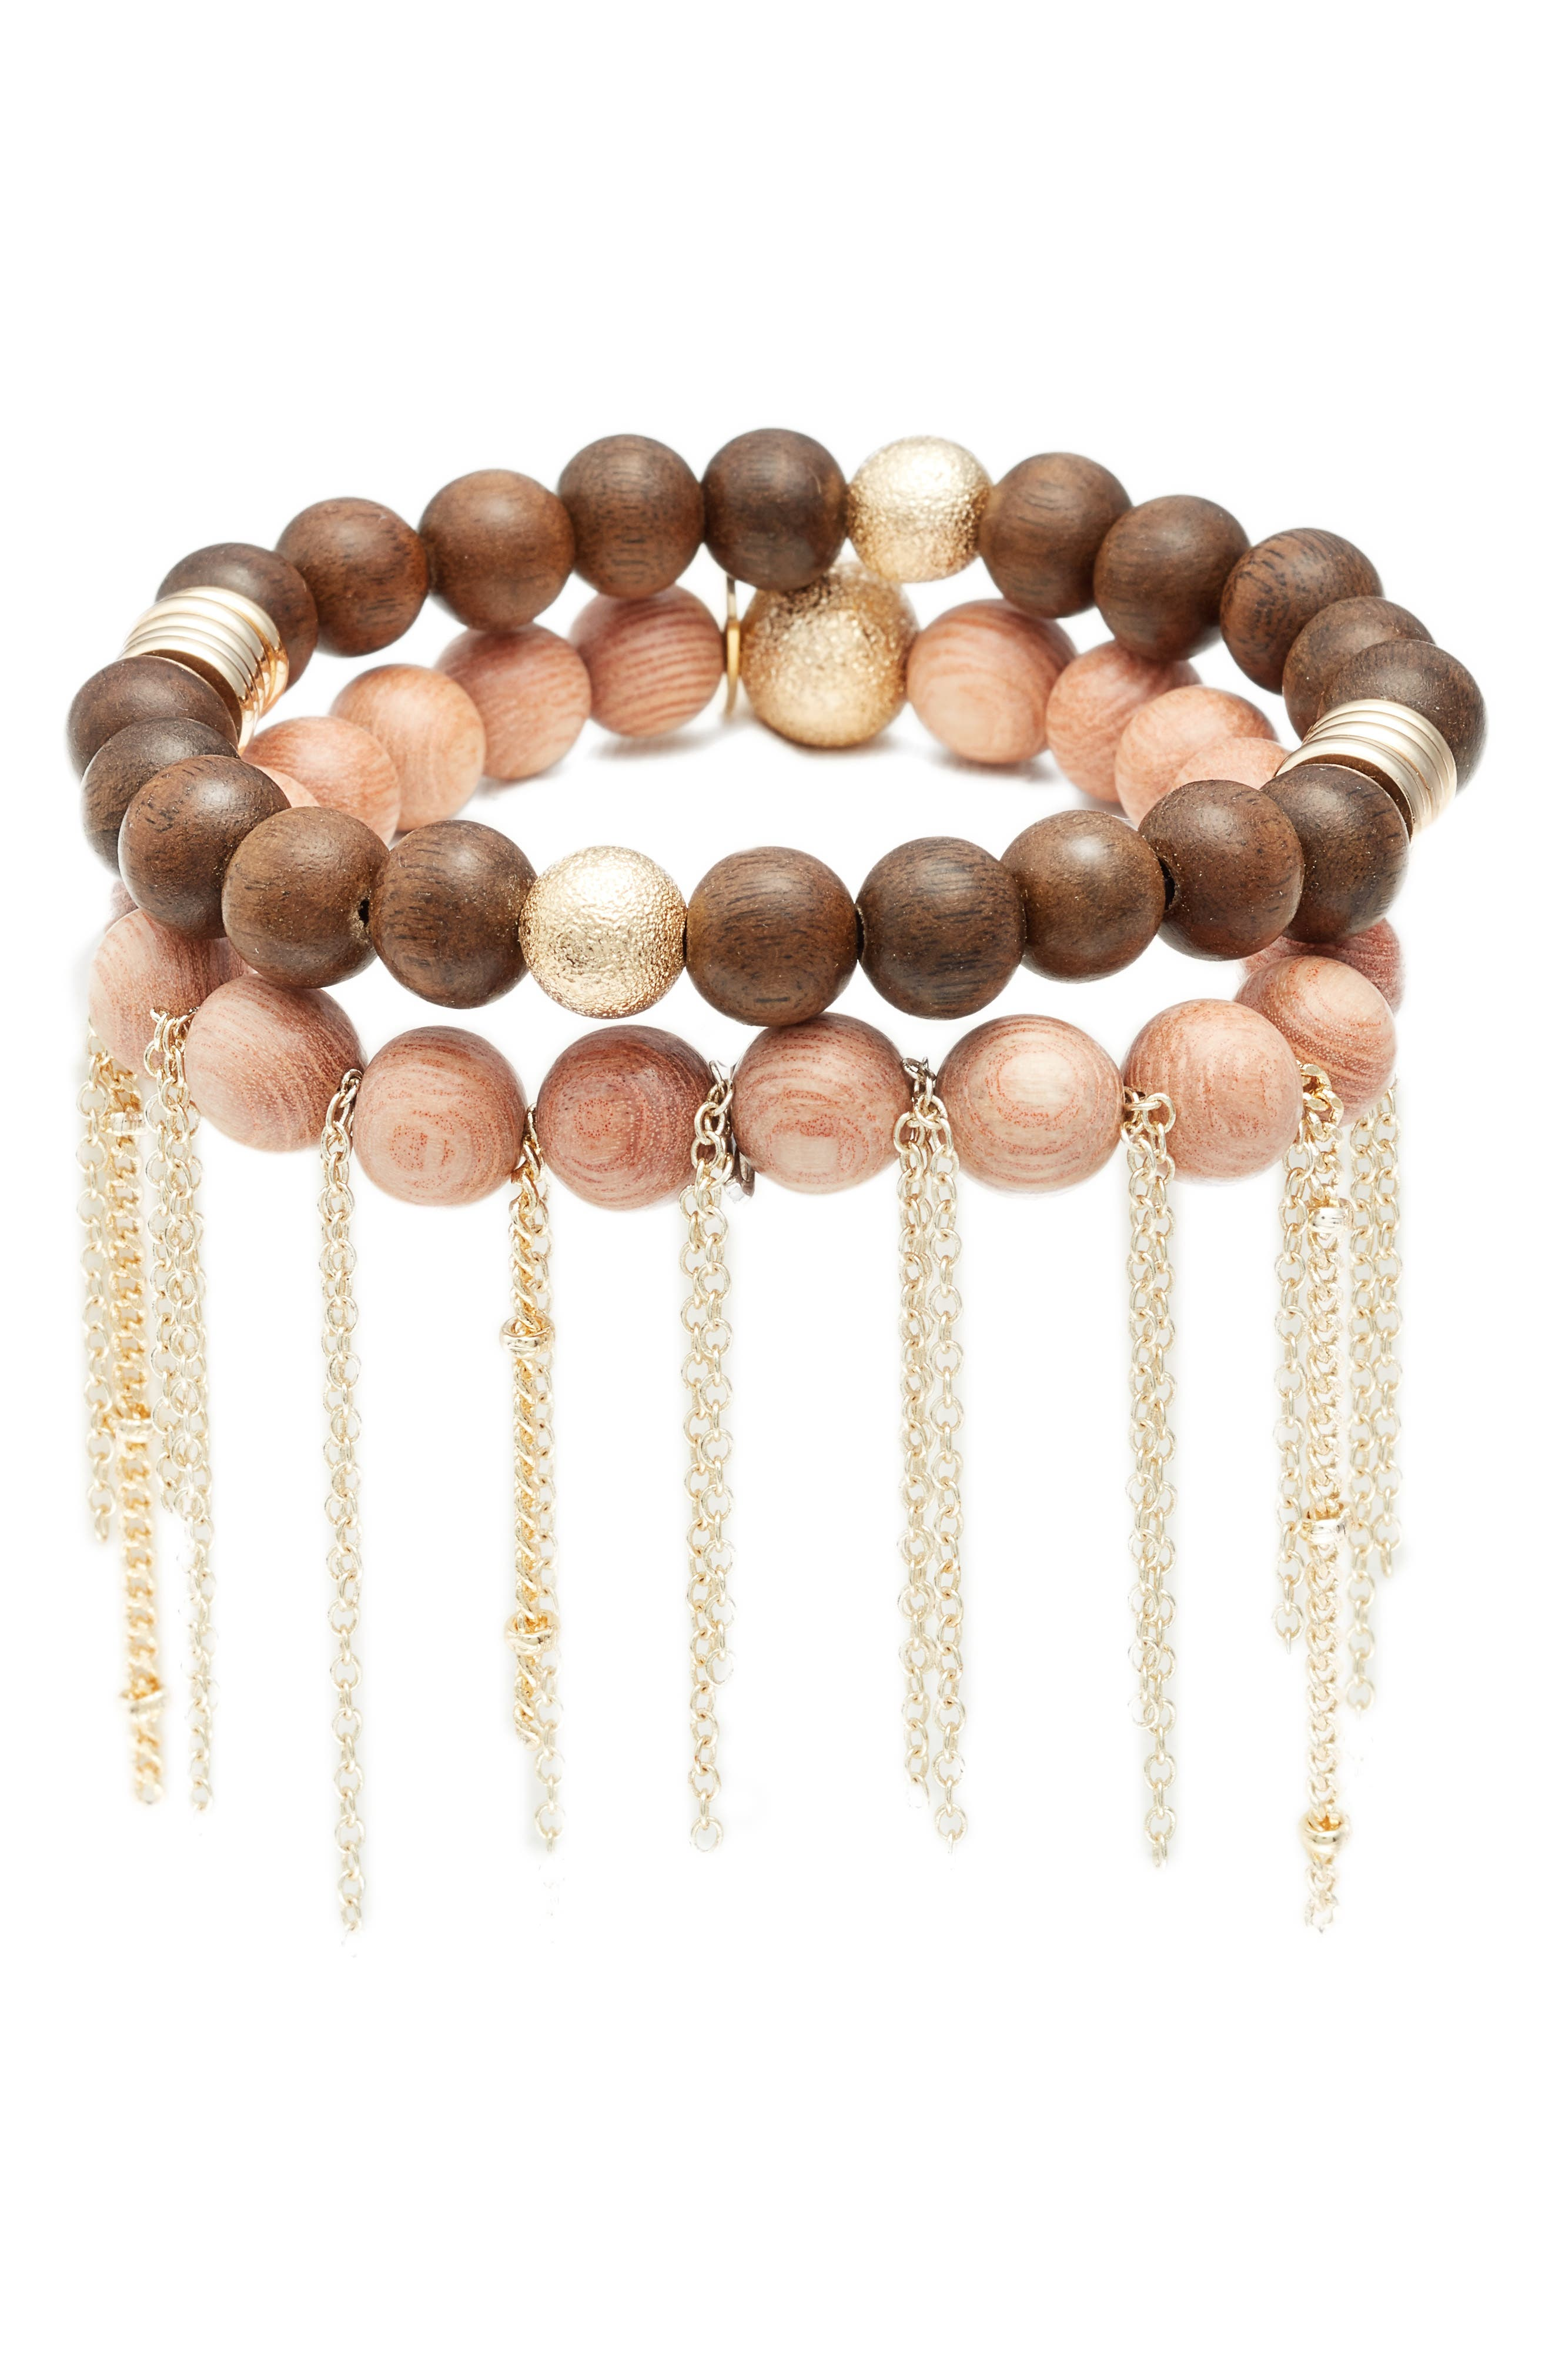 The Lace Project Set of 2 Bead Stretch Bracelet